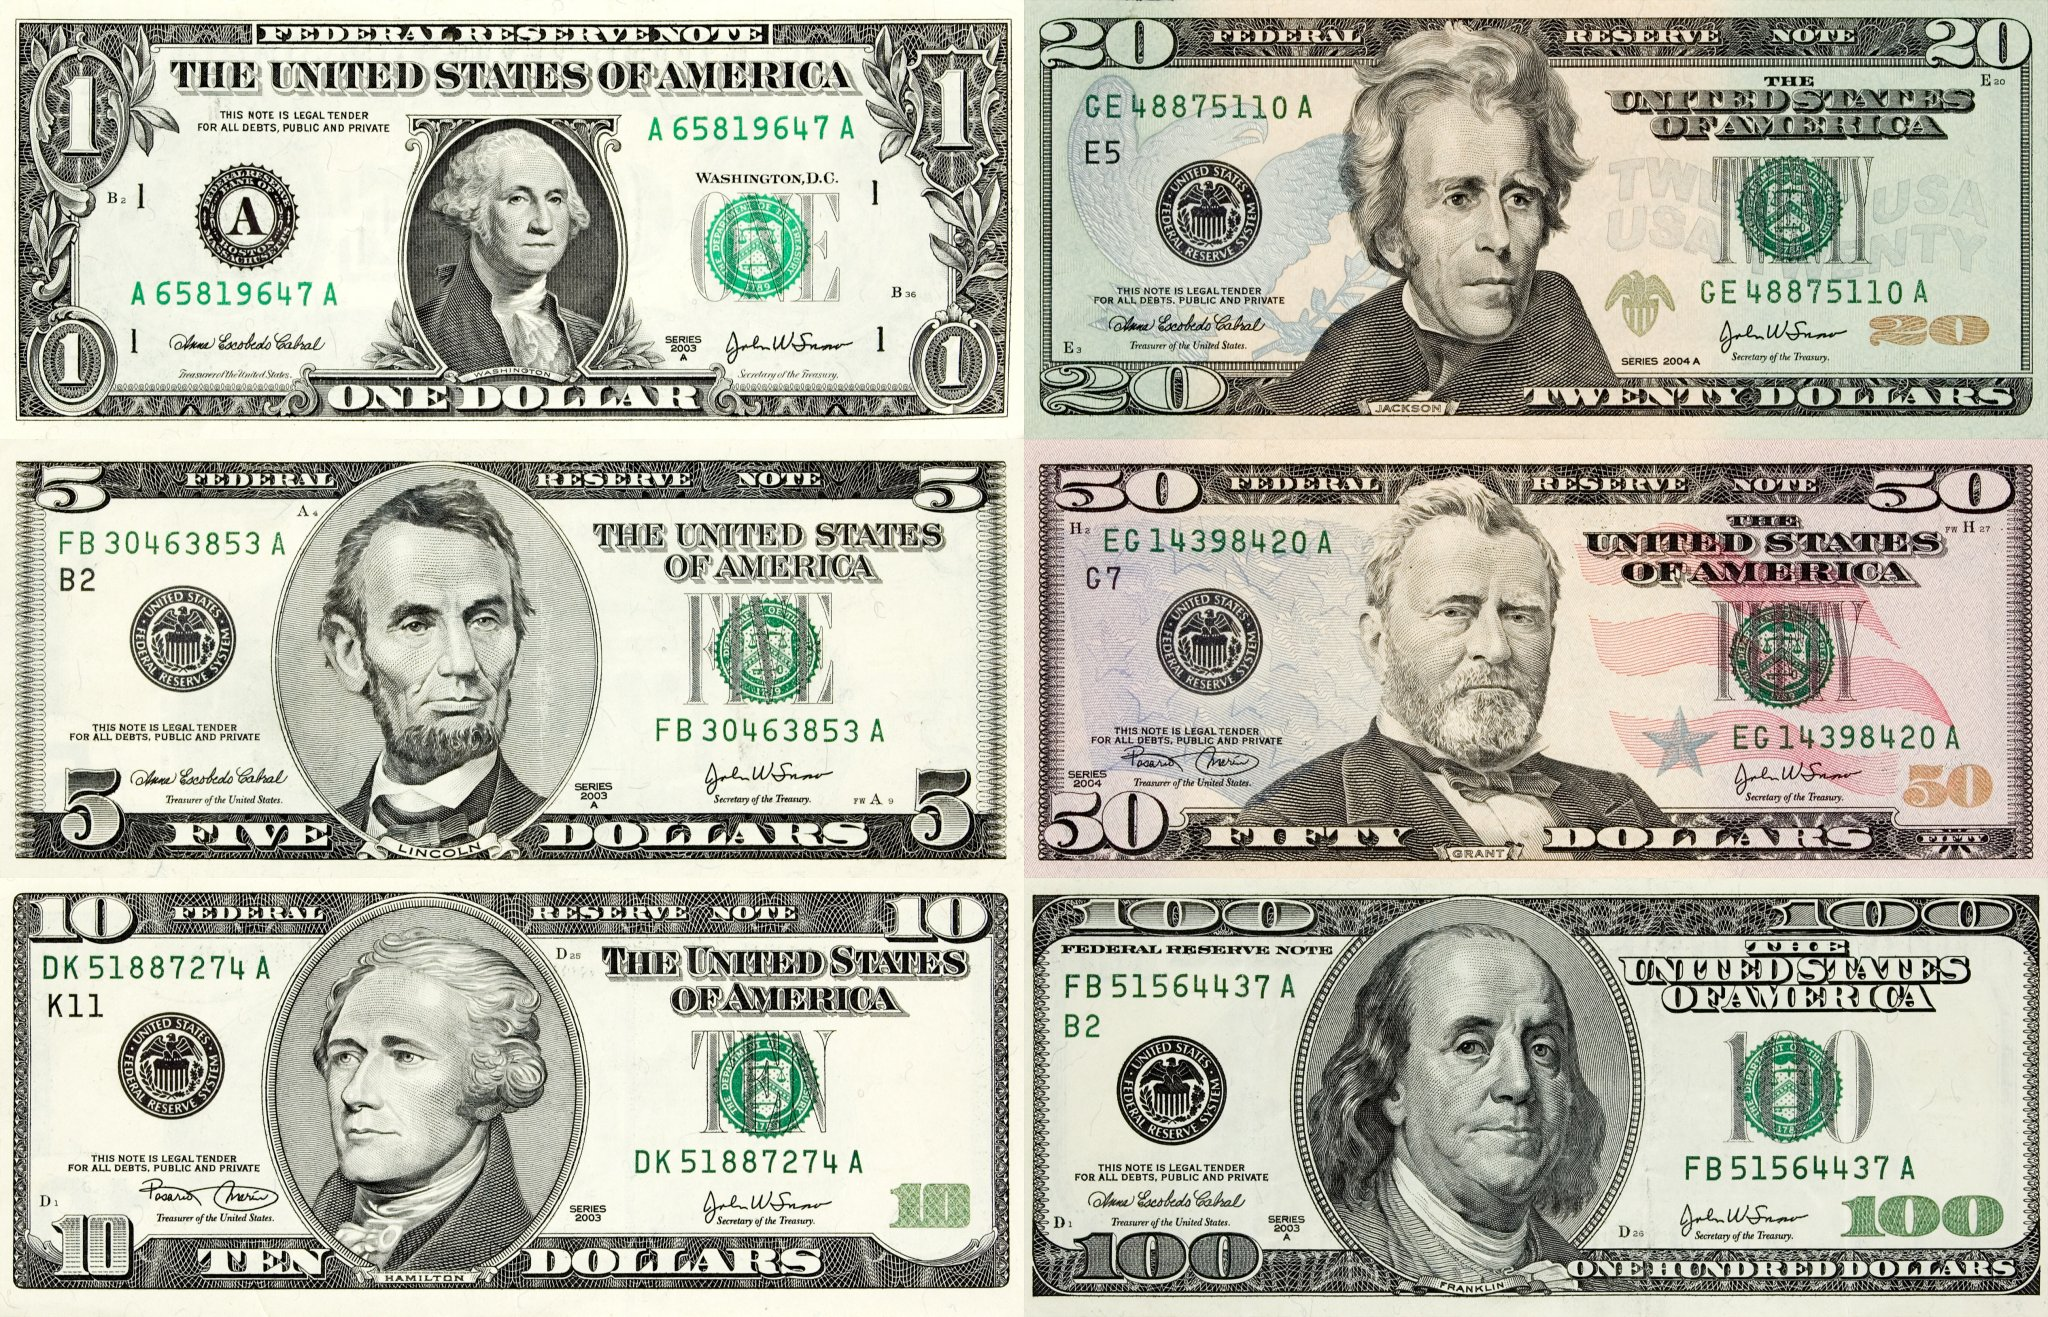 Us dollar currency notes pictures M: 100 Greatest American Currency Notes